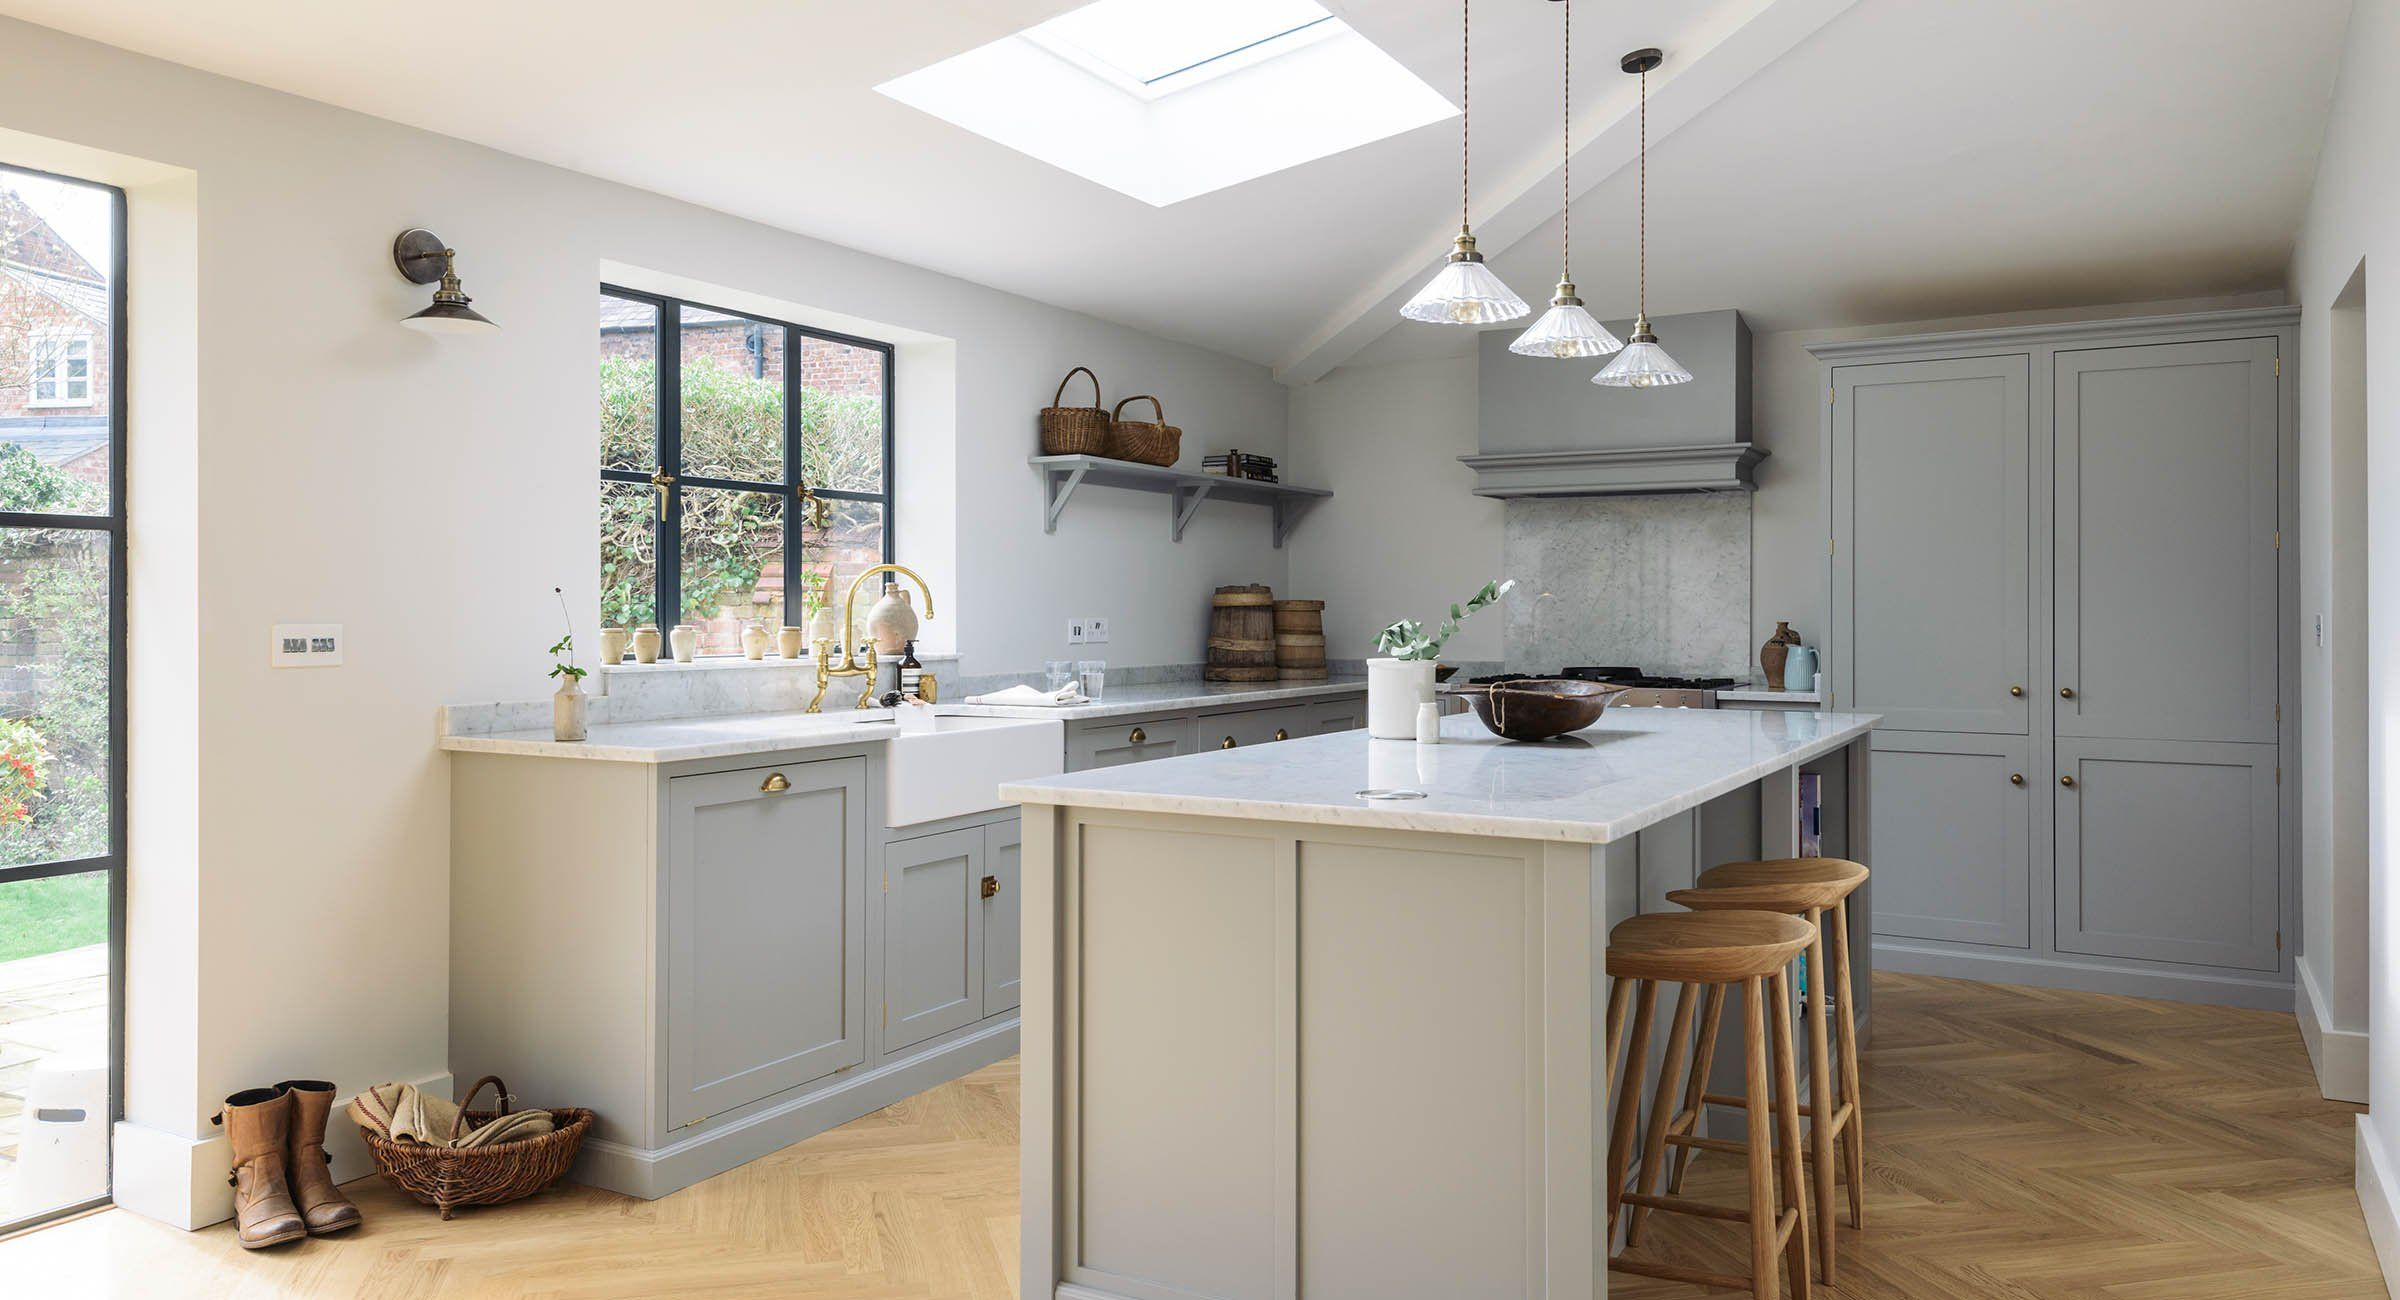 Shaker Kitchens By Devol Handmade Painted English Kitchens In 2020 Kitchen Decor Uk Shaker Kitchen Shaker Style Kitchen Cabinets